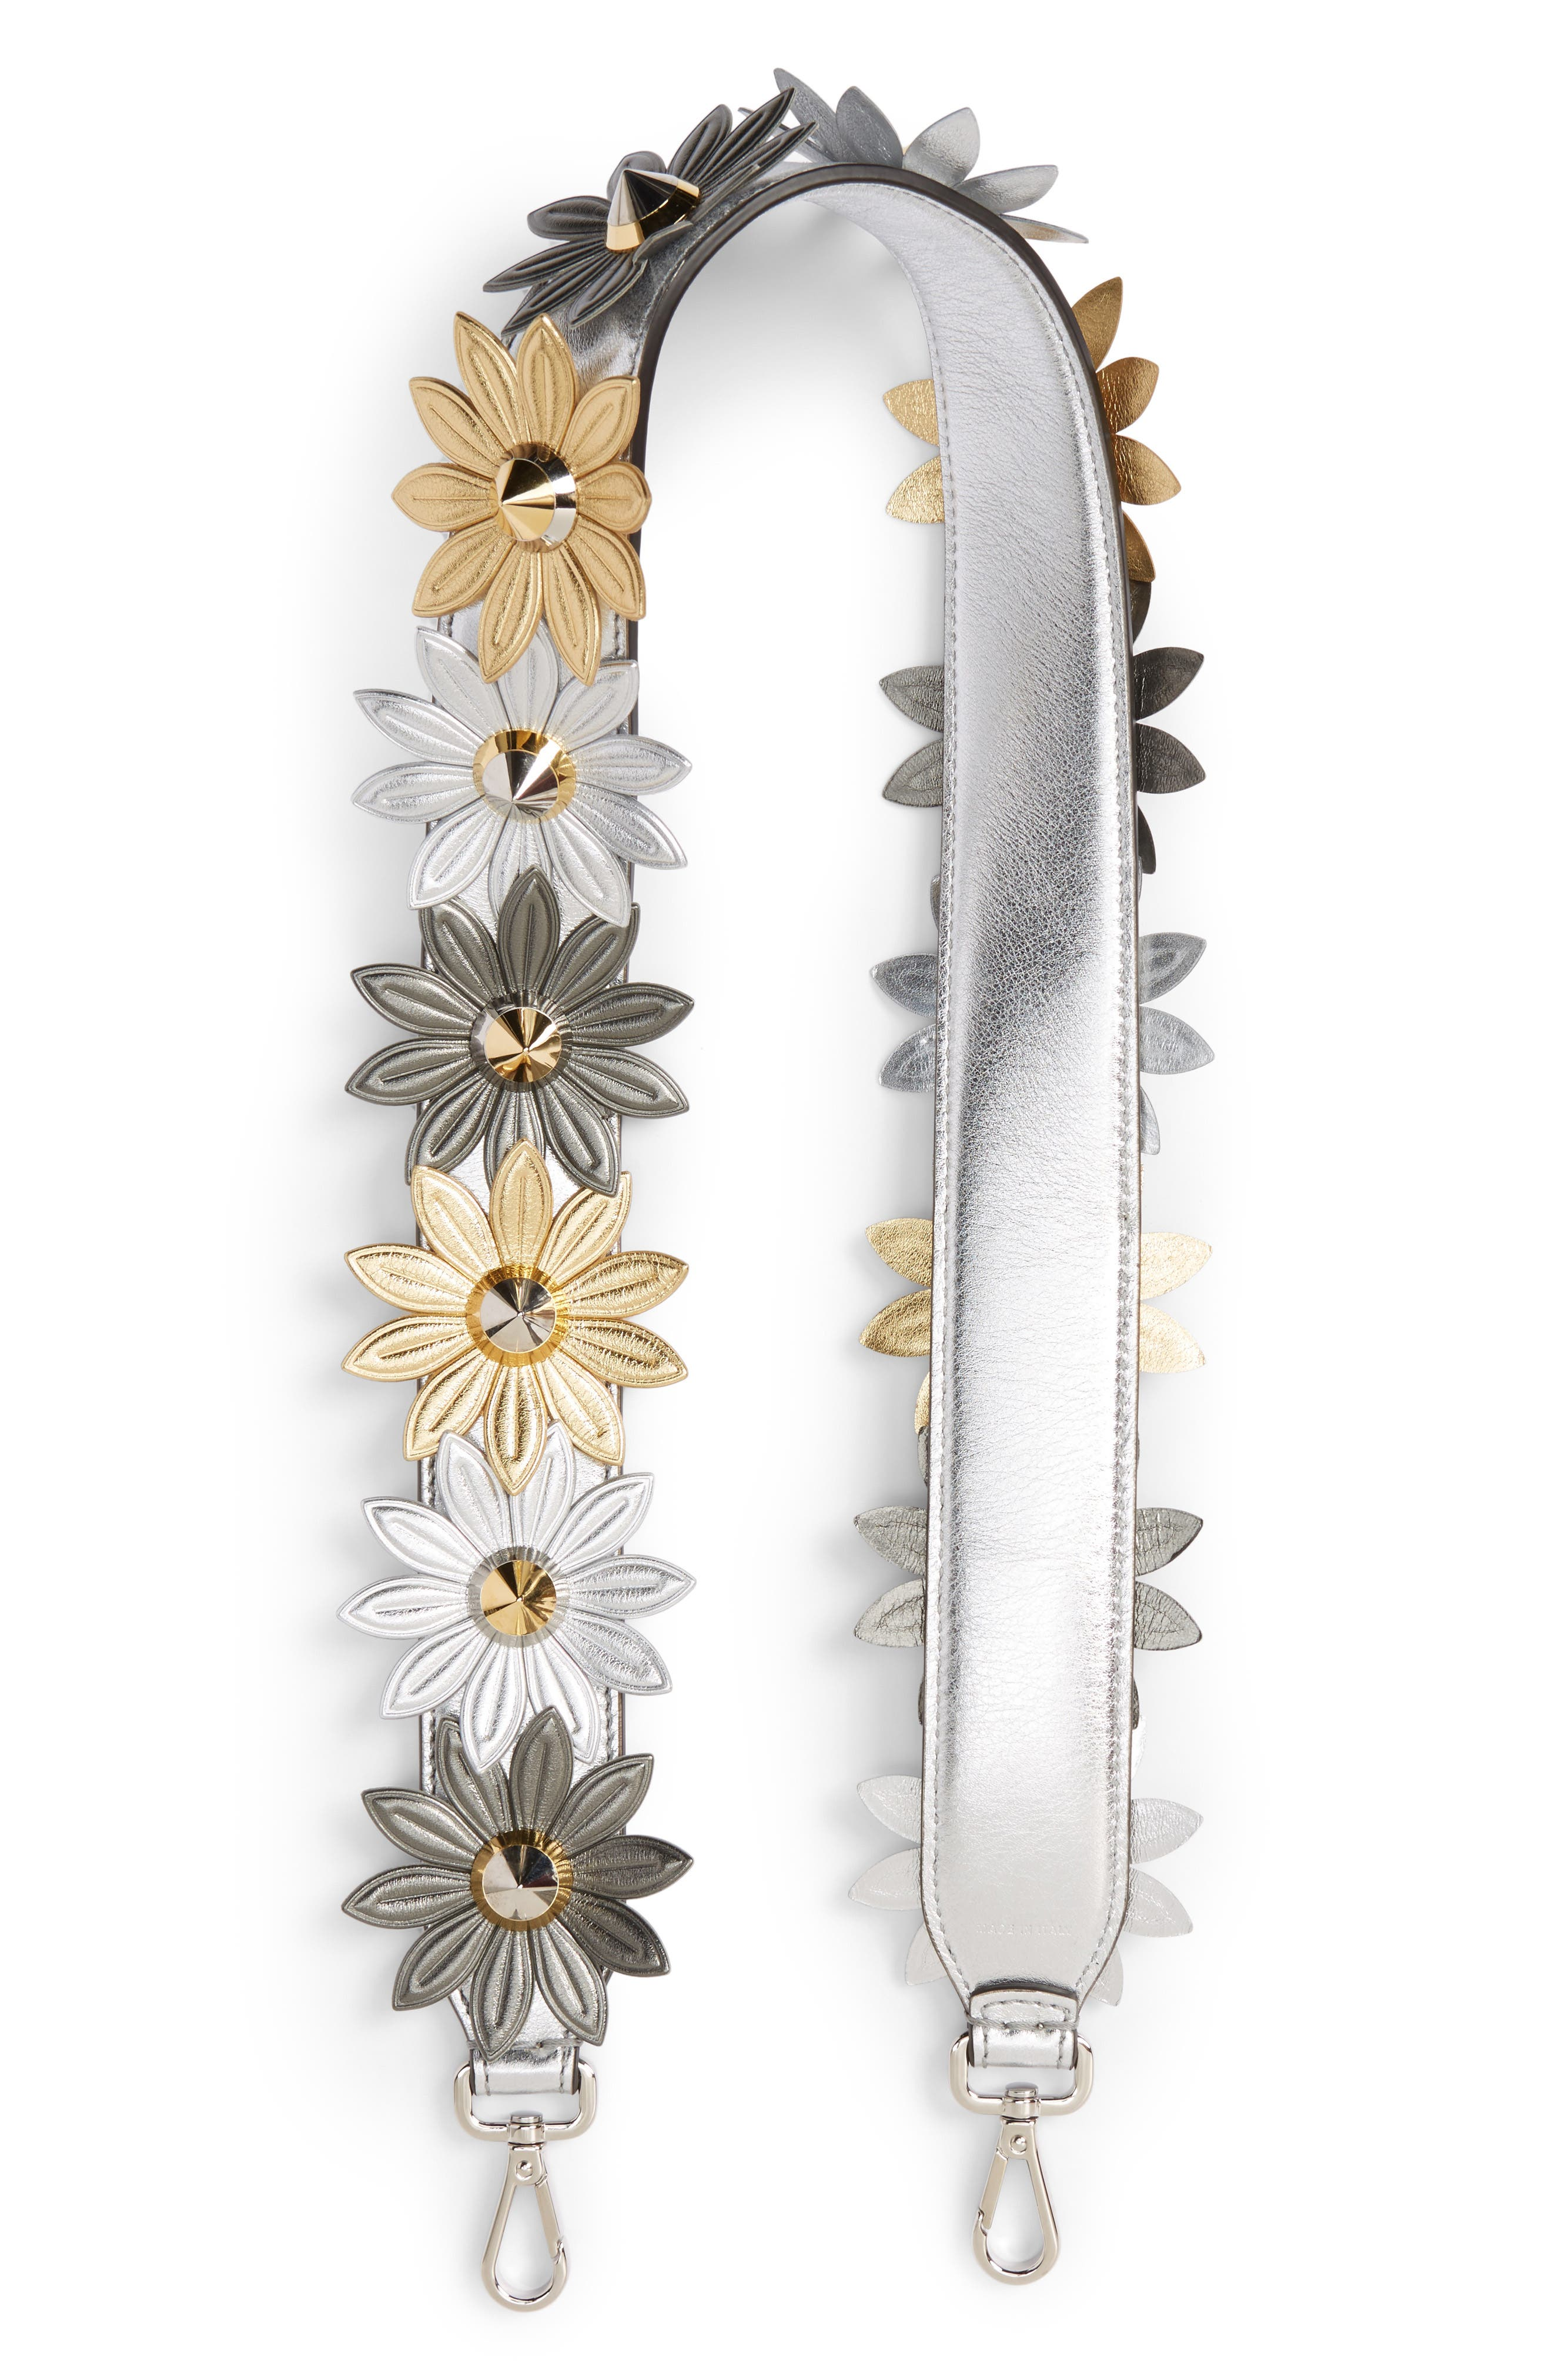 Strap You Metallic Daisy Leather Guitar Style Strap,                             Main thumbnail 1, color,                             100